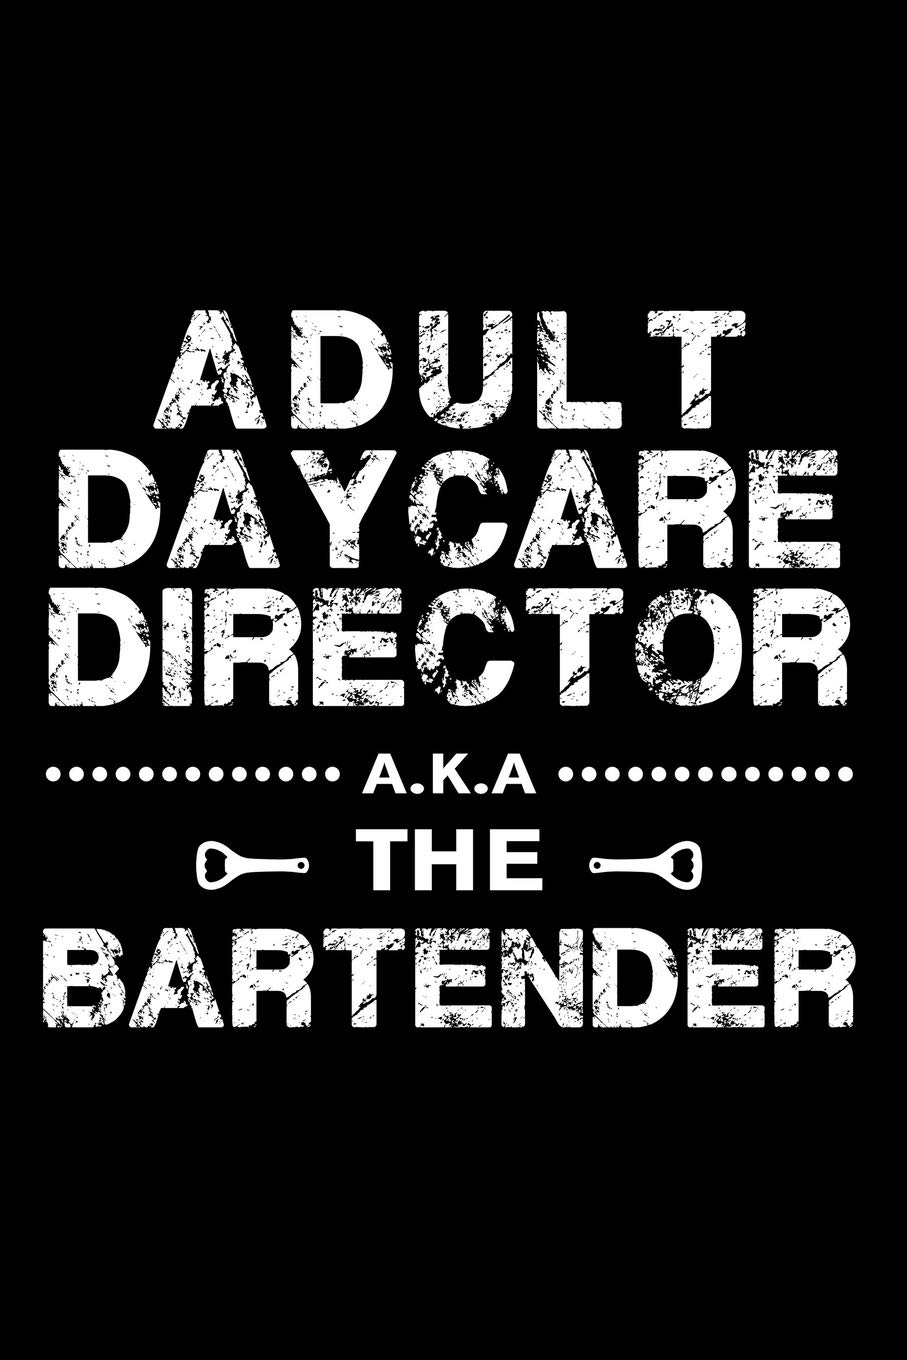 Funny Bartender Monthly Planner 2020 2021 Adult Daycare Director A K A The Bartender Funny Quotes Bartender 2 Years Planner A5 Size Schedule Calendar Views To Write In Ideas Publishing Funny Bartender Co 9798600640474 Amazon Com Books